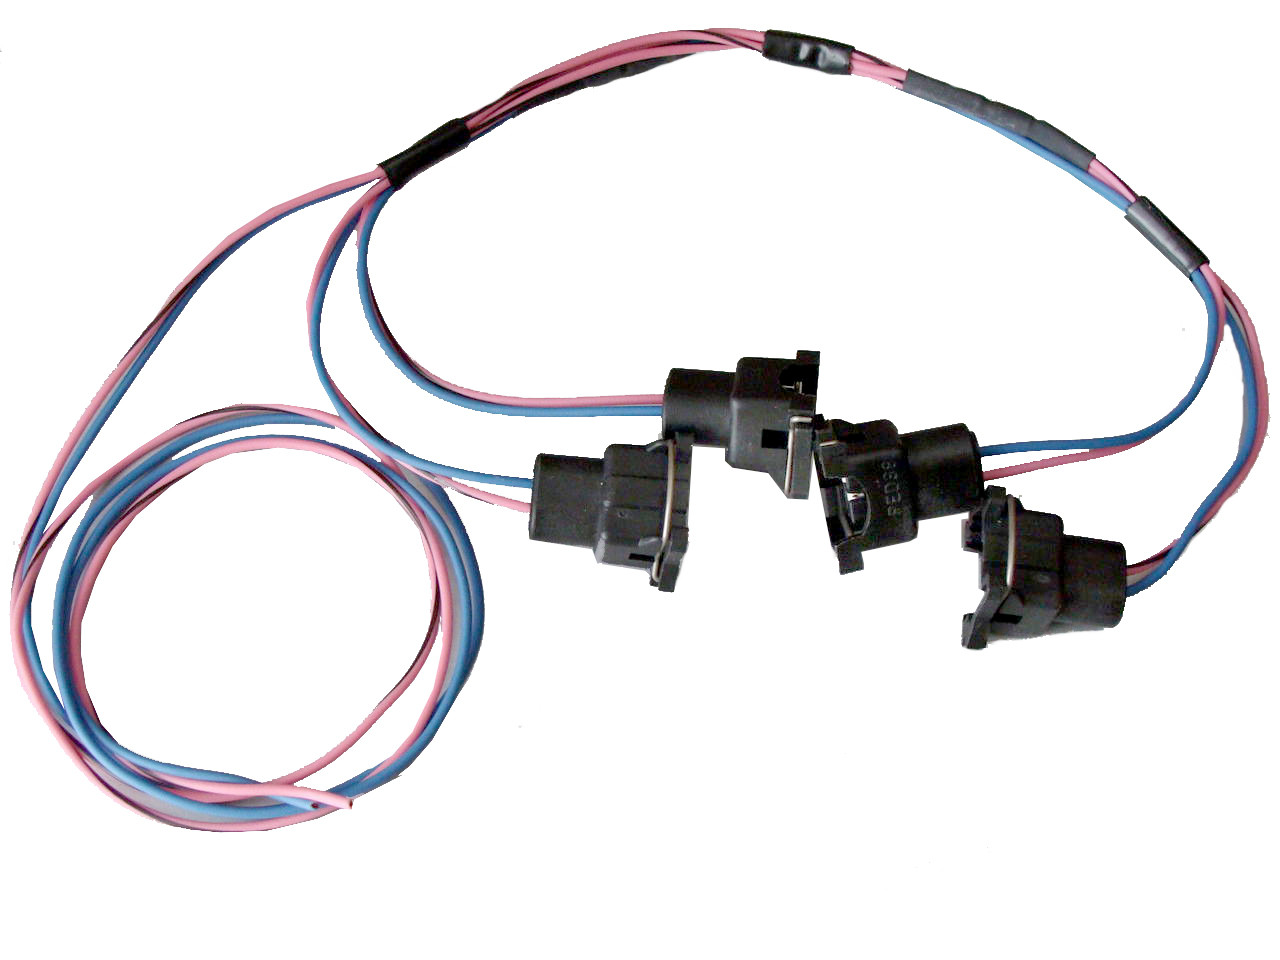 Wiring Harness Lt1 Automatic Opinions About Diagram For A 93 Camaro 85 95 Tpi Fuel Injector Connector Assembly Rh Hawksmotorsports Com Wire Z28